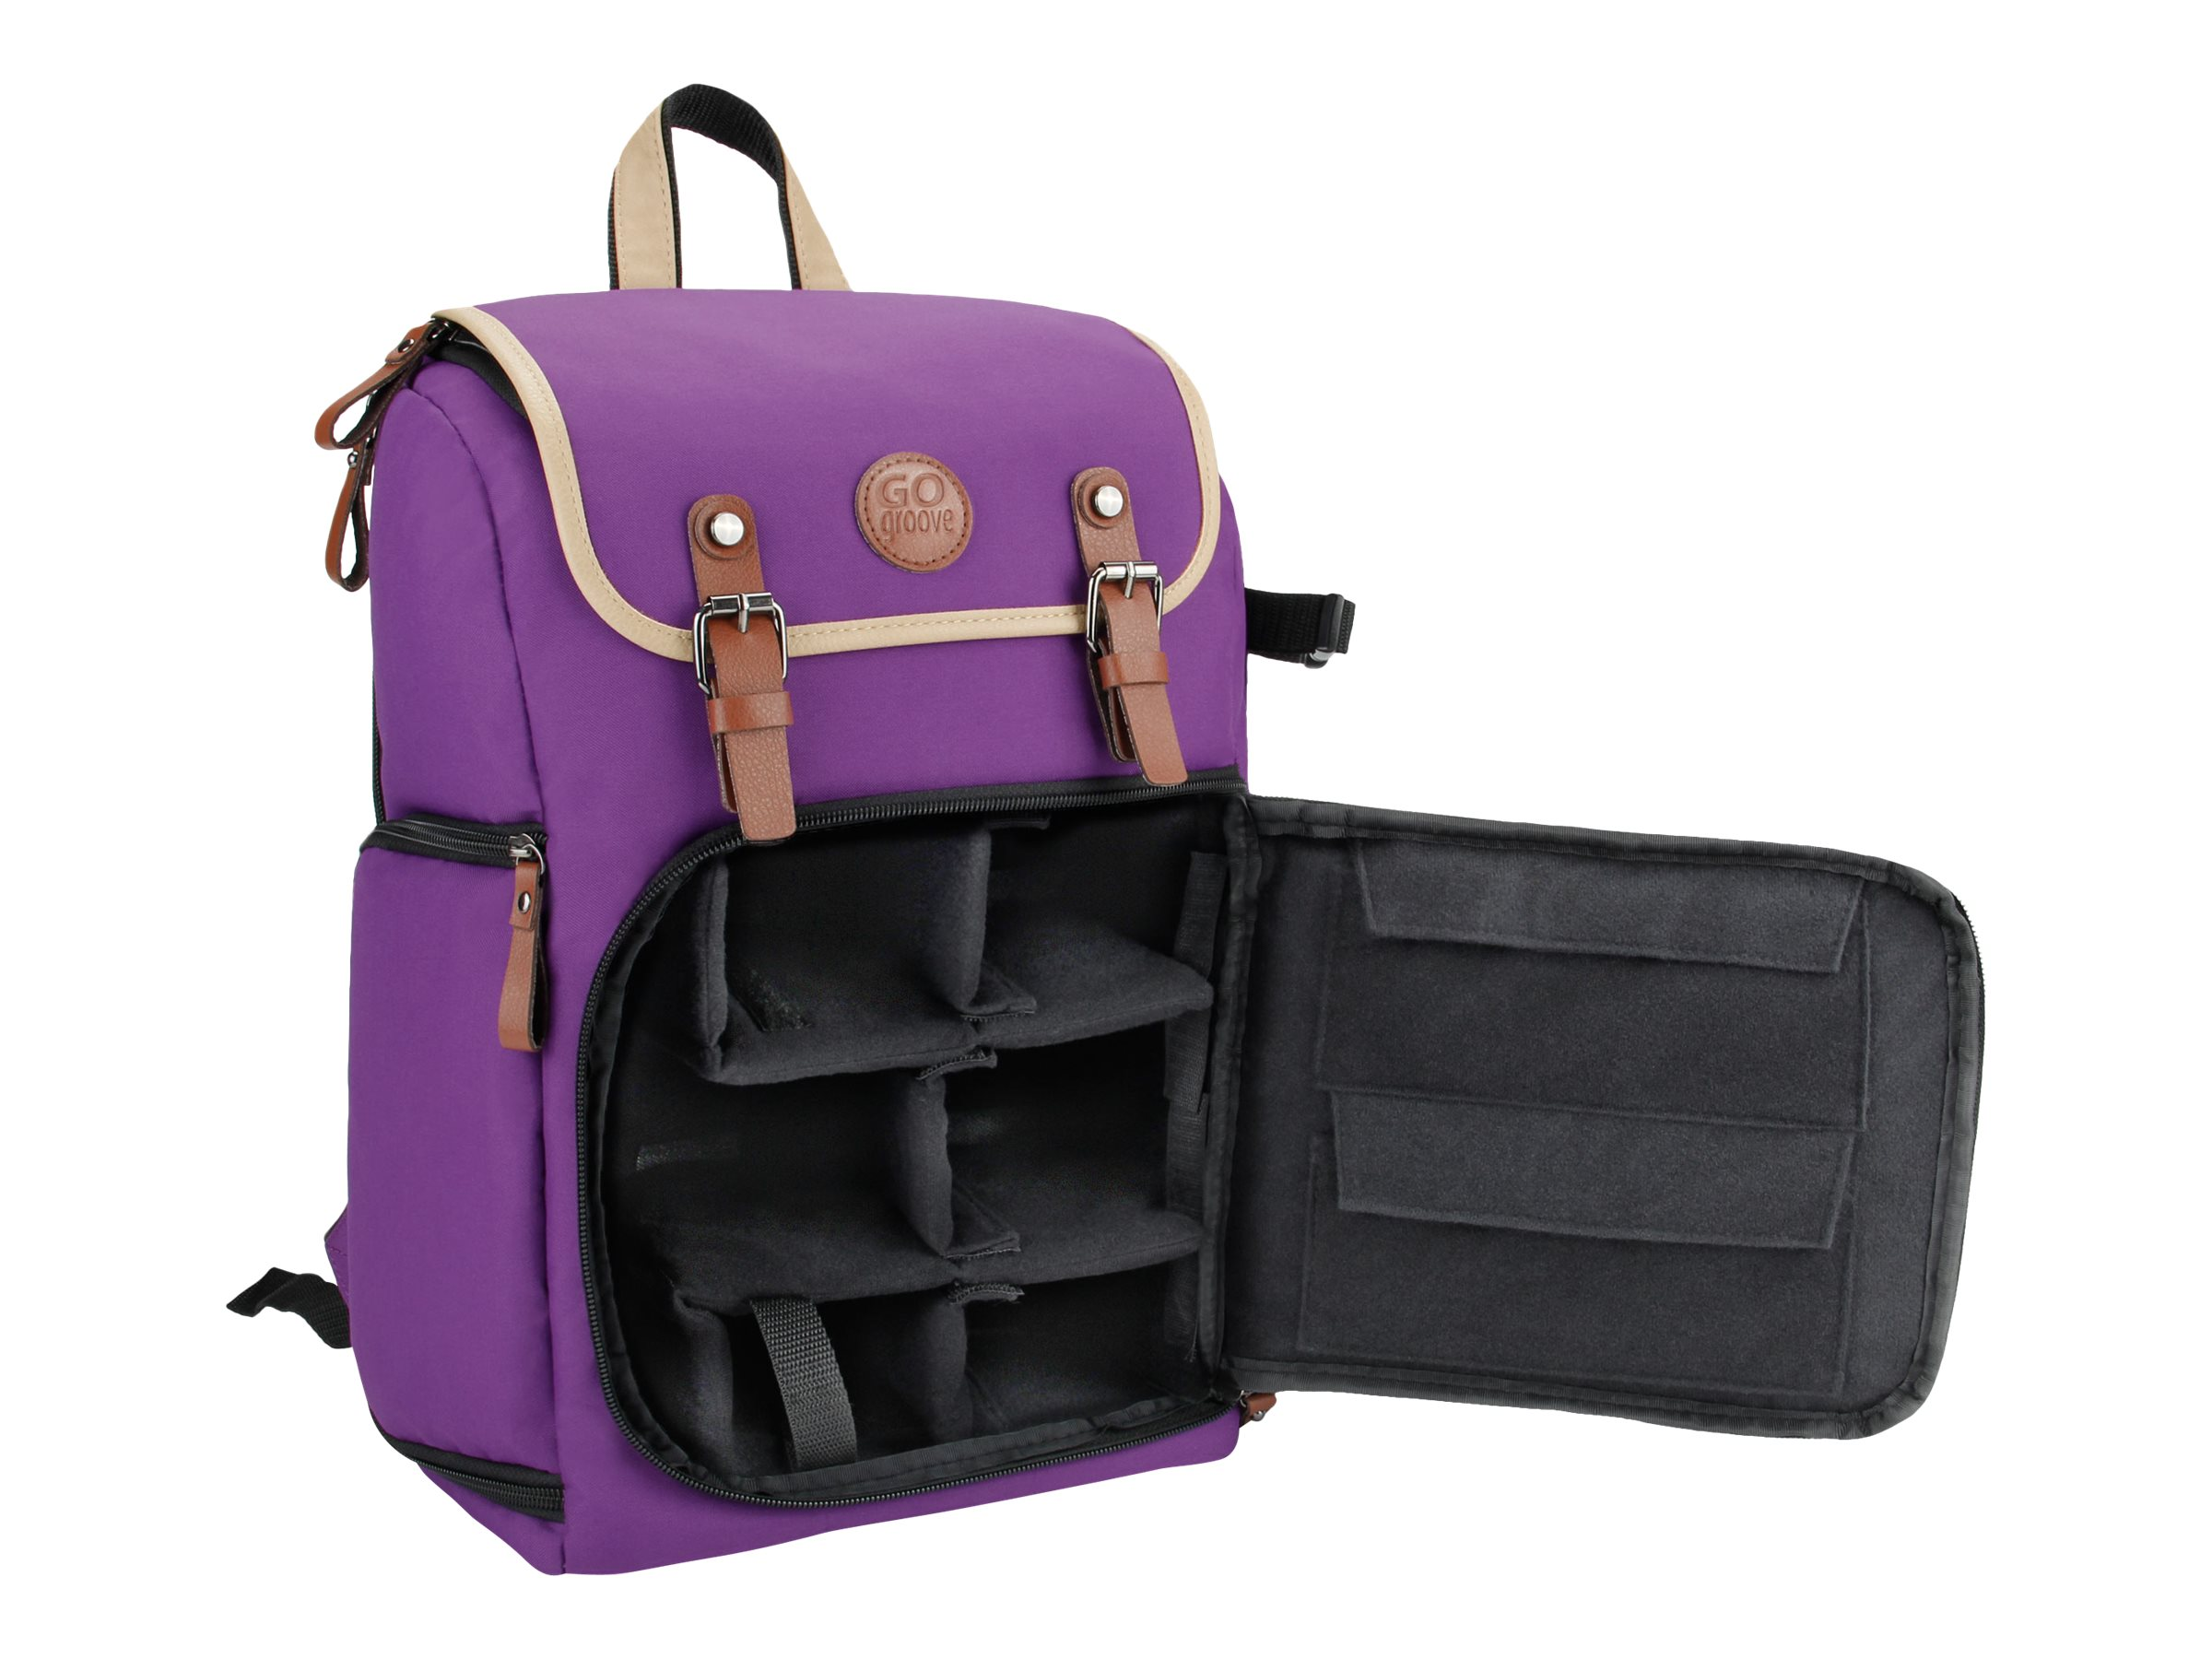 GOgroove - backpack for digital photo camera with lenses